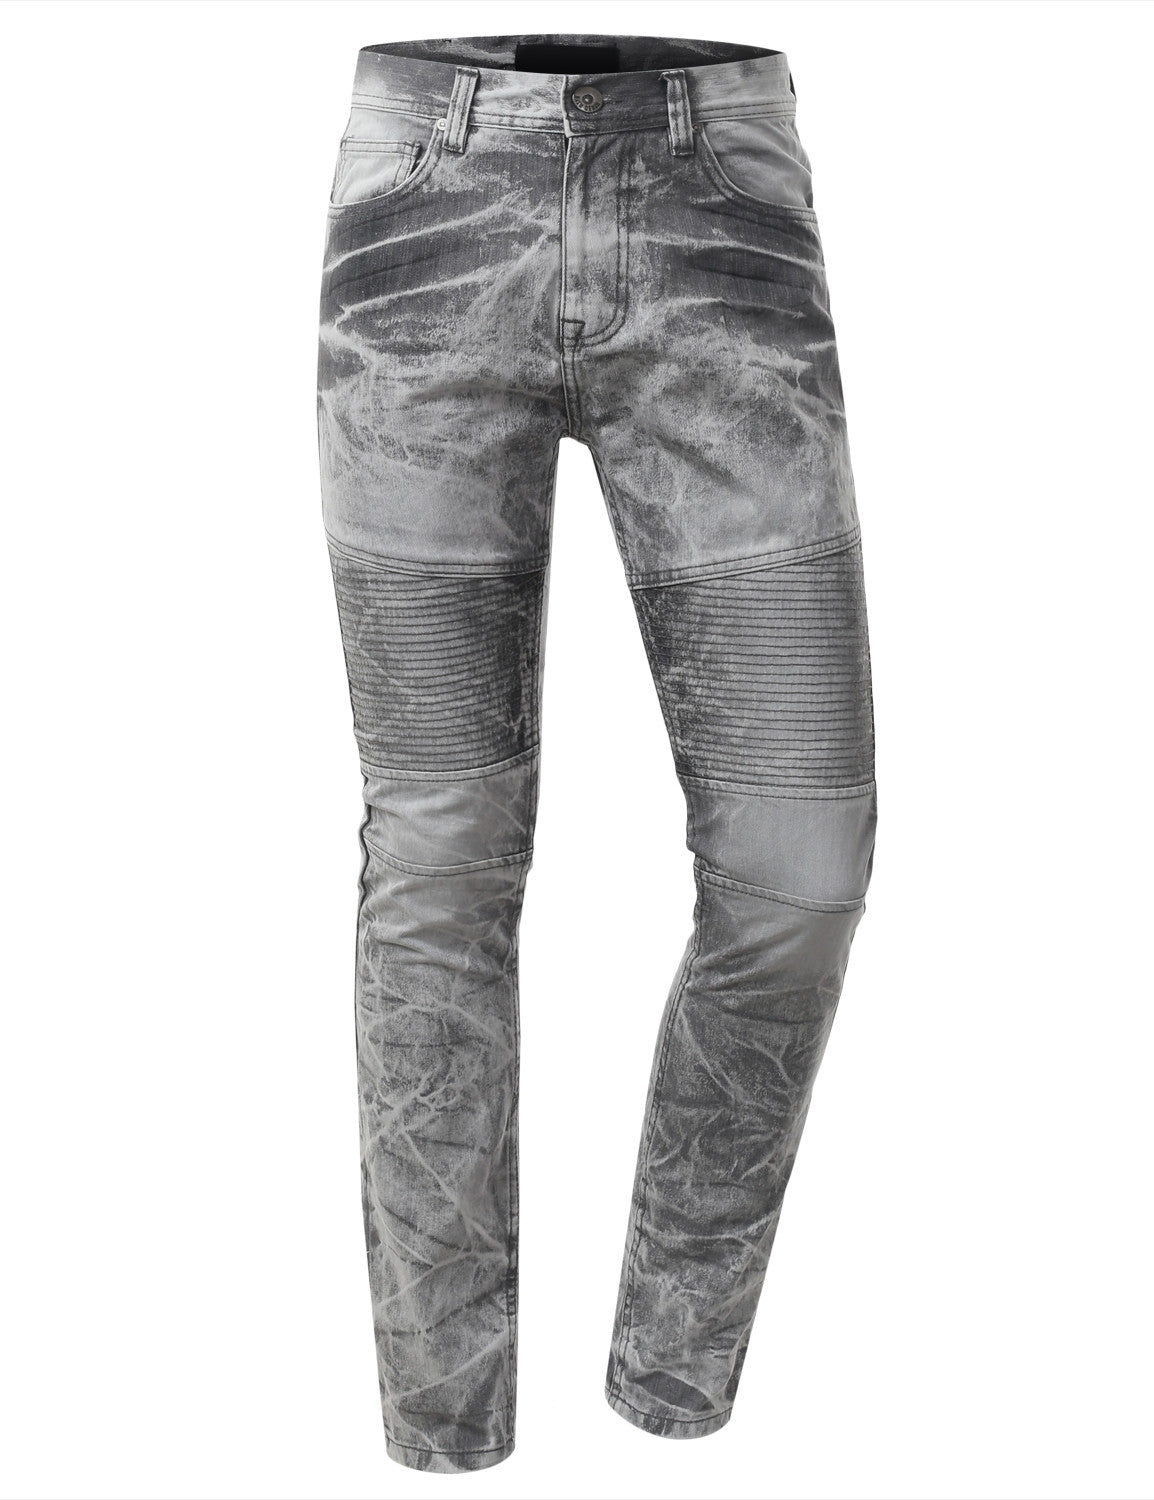 Straight Slim Fit Acid Wash Biker Jeans - URBANCREWS - 5